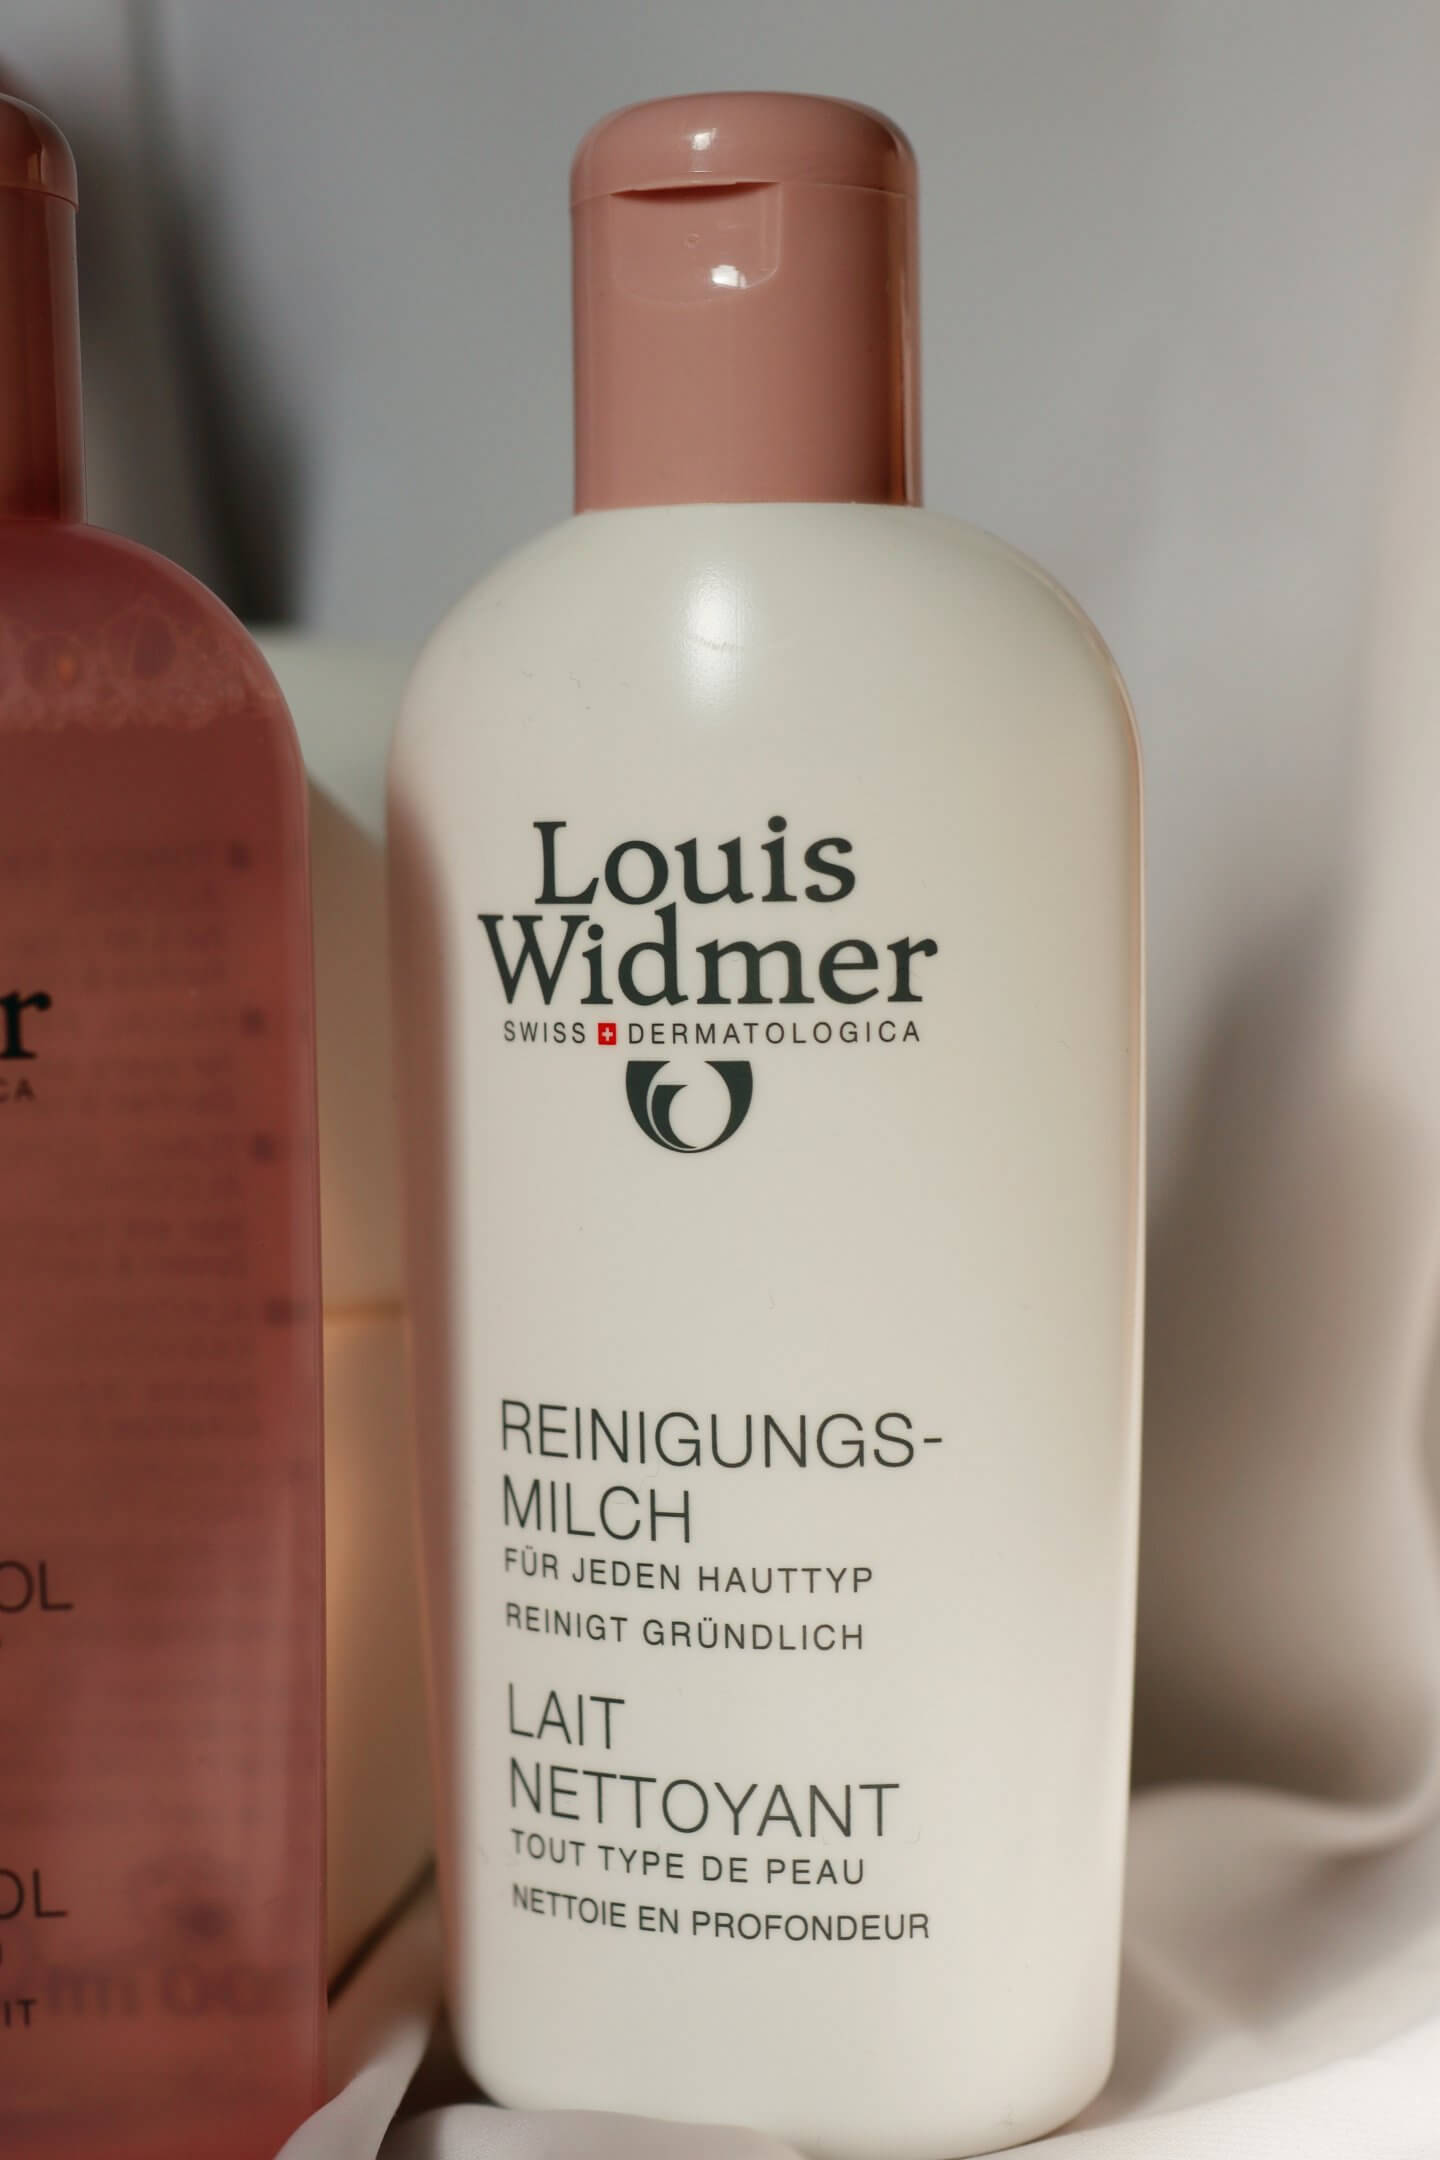 Louis Widmer Cleansing Milk - Actually Anna